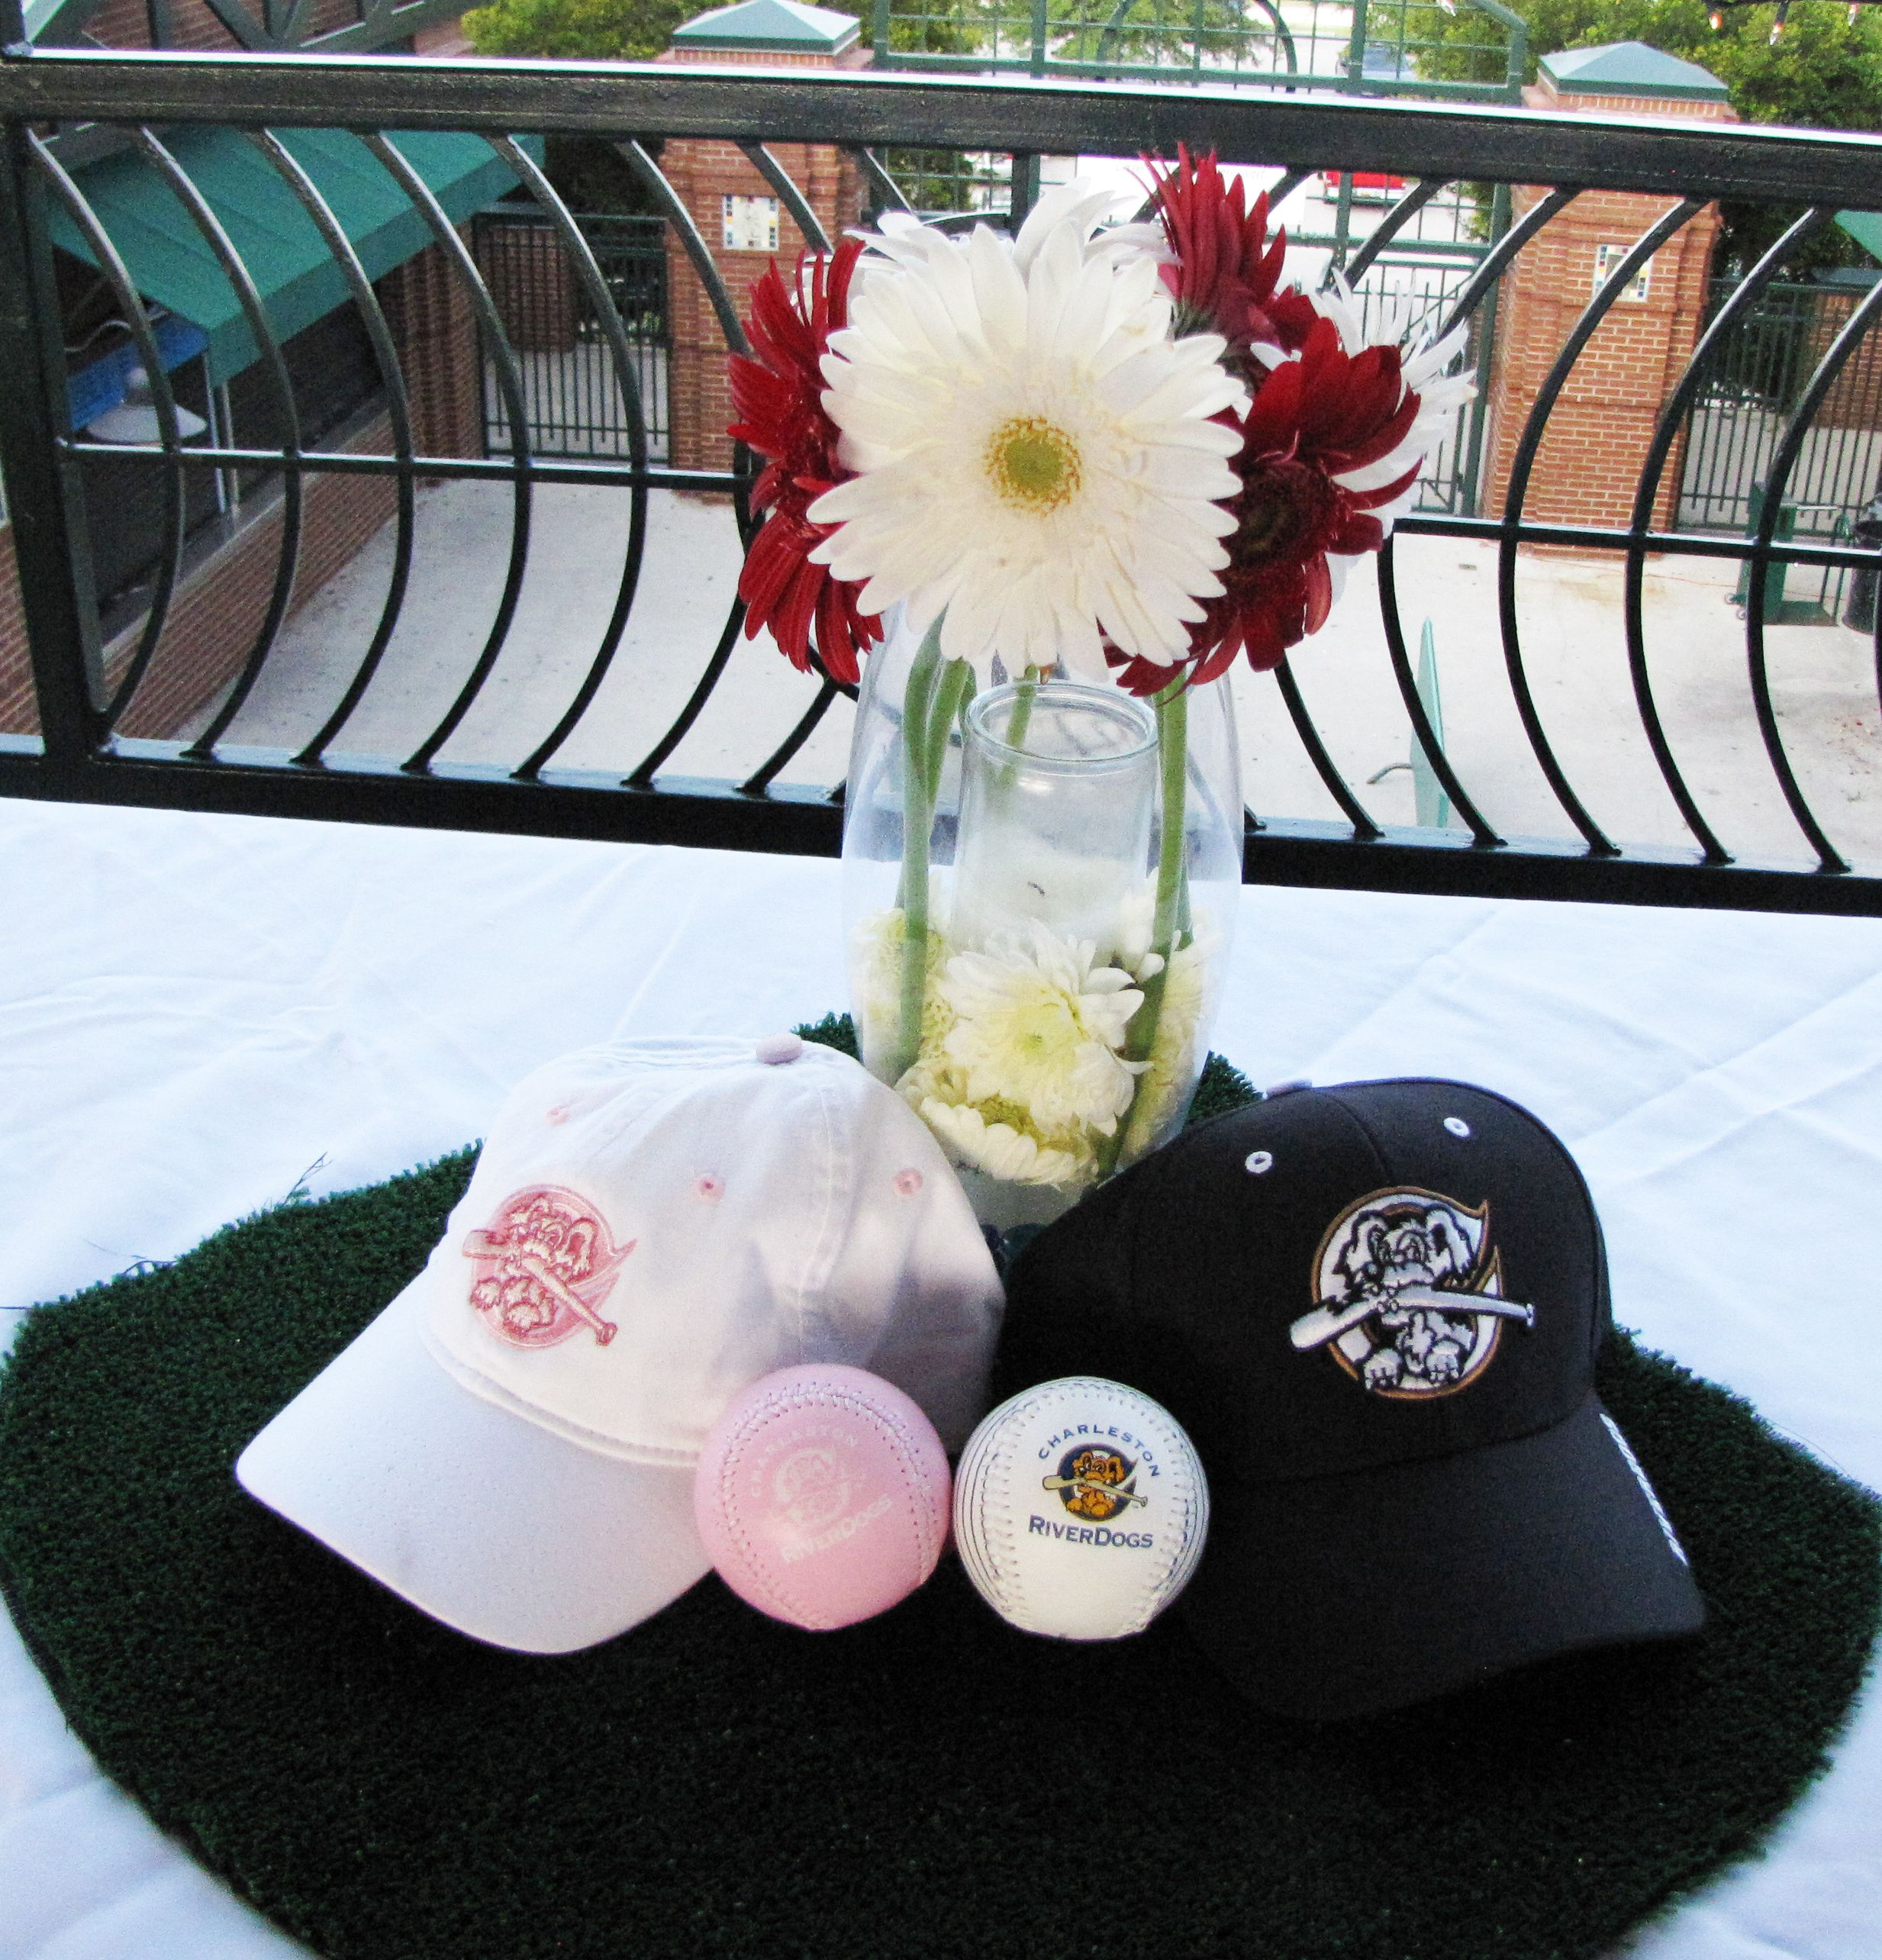 His and hers riverdogs caps and baseballs centerpieces by chelsea